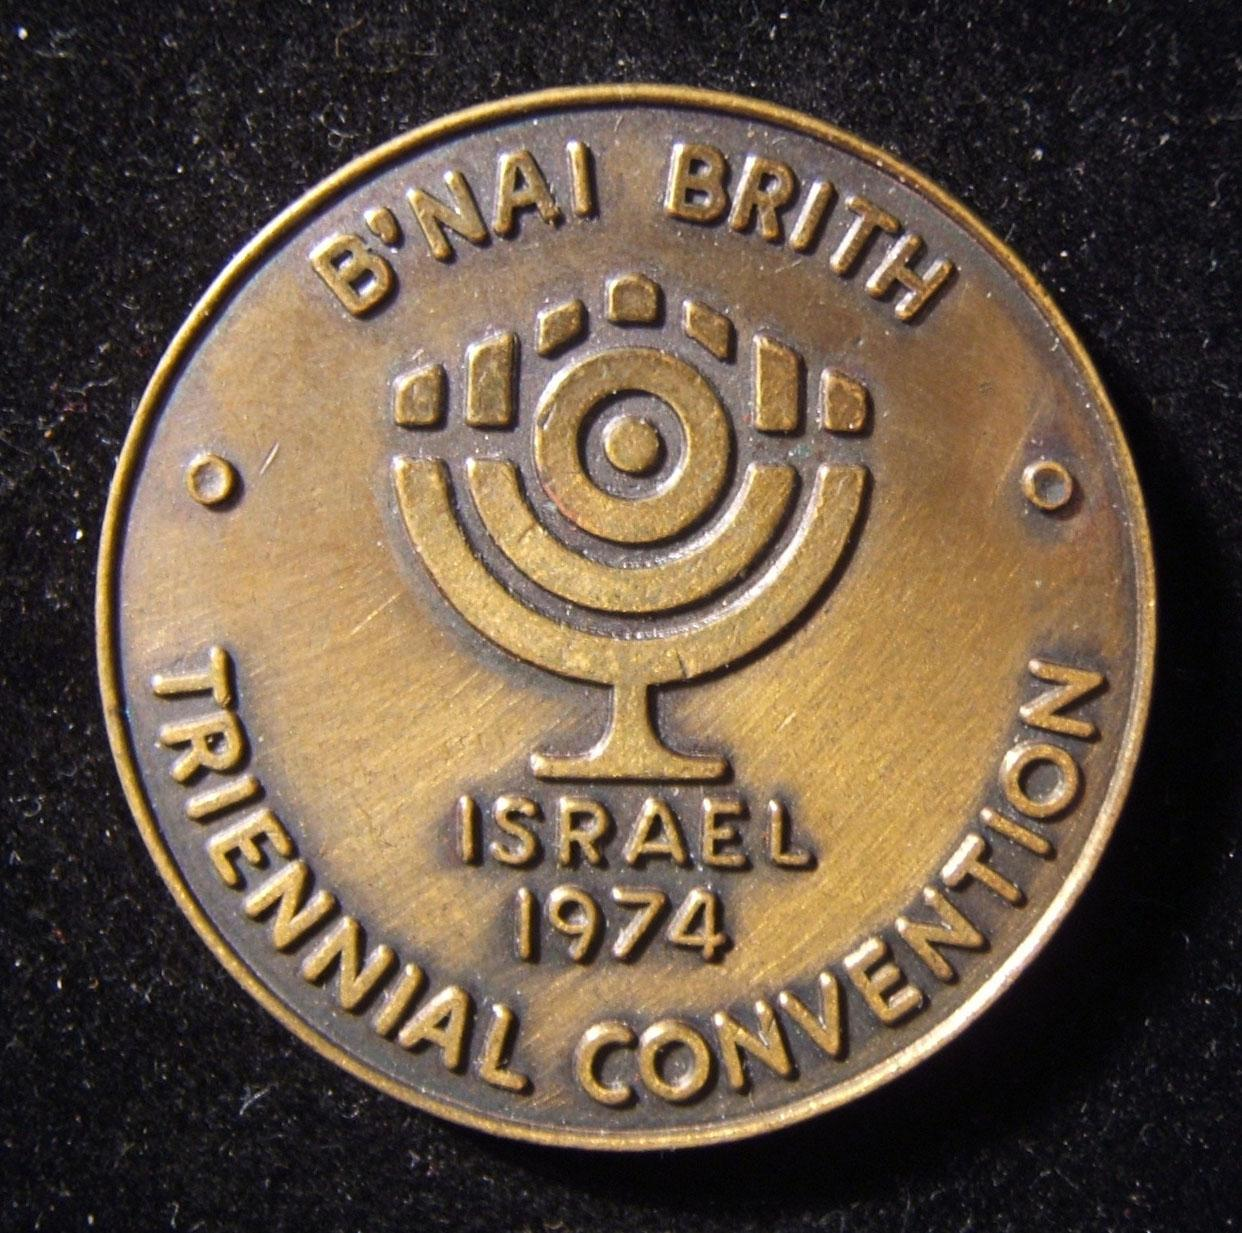 American/Israeli Judaica medal for Bnai Brith Jerusalem Garden convention, 1974